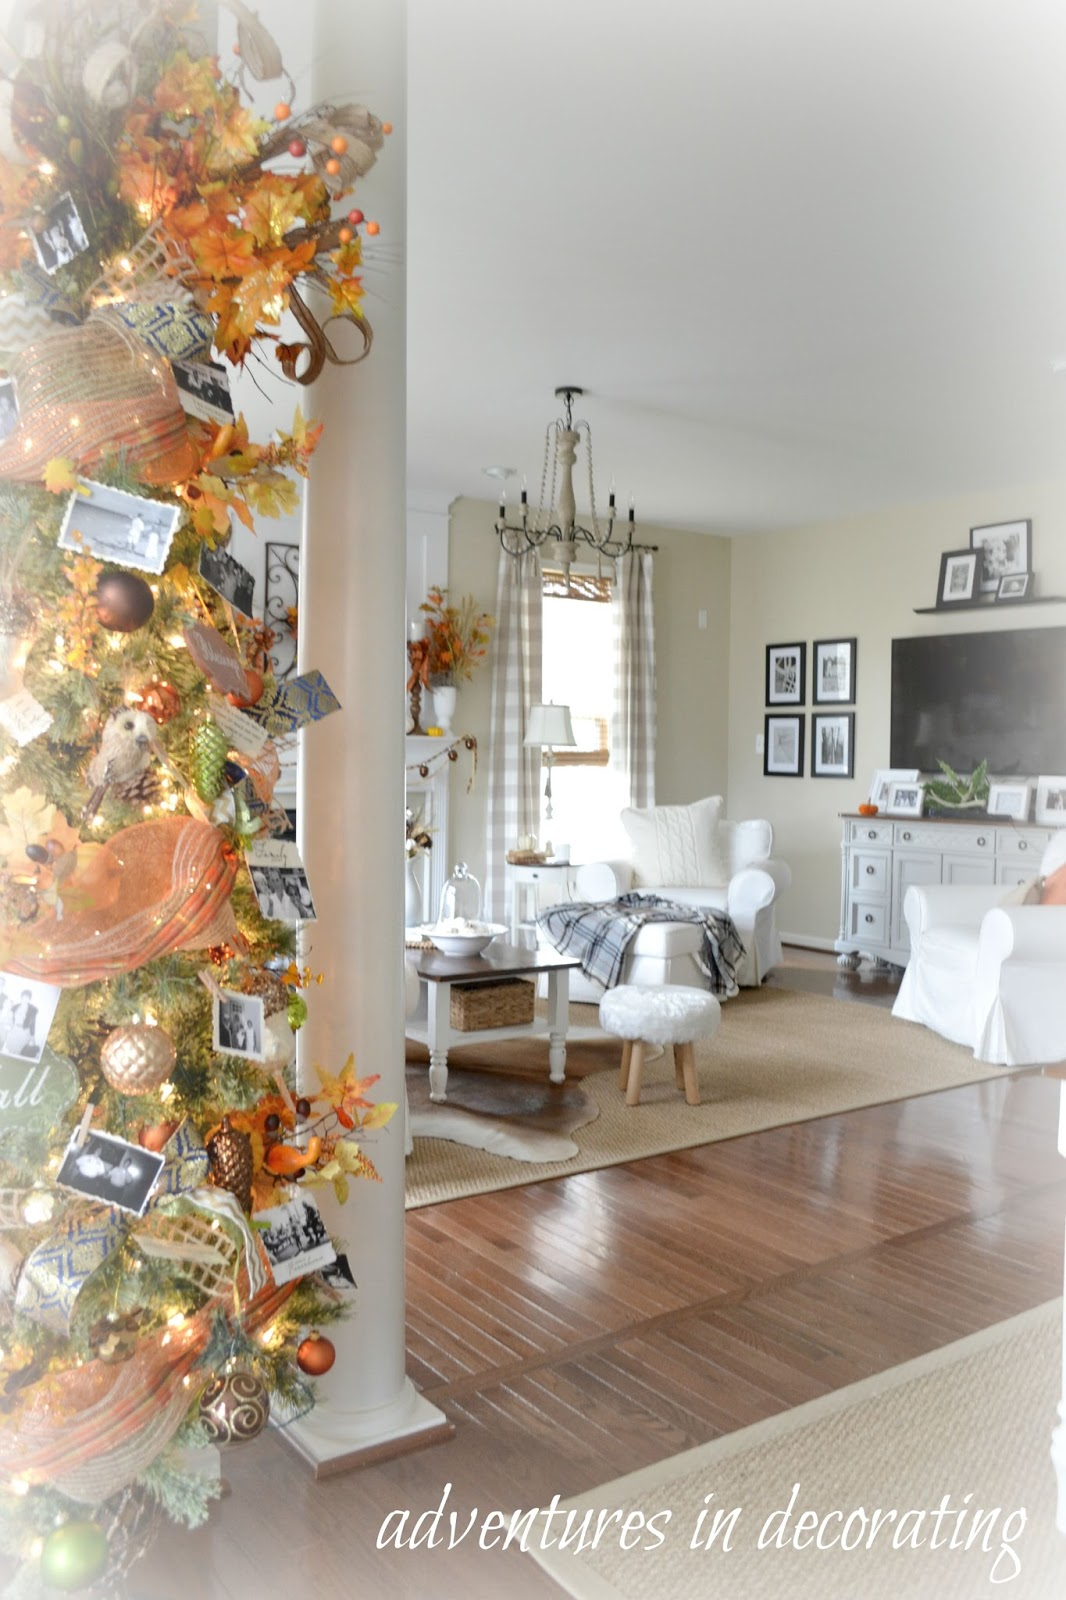 Adventures In Decorating Our 2015 Fall Kitchen: Adventures In Decorating: Our Fall Great Room